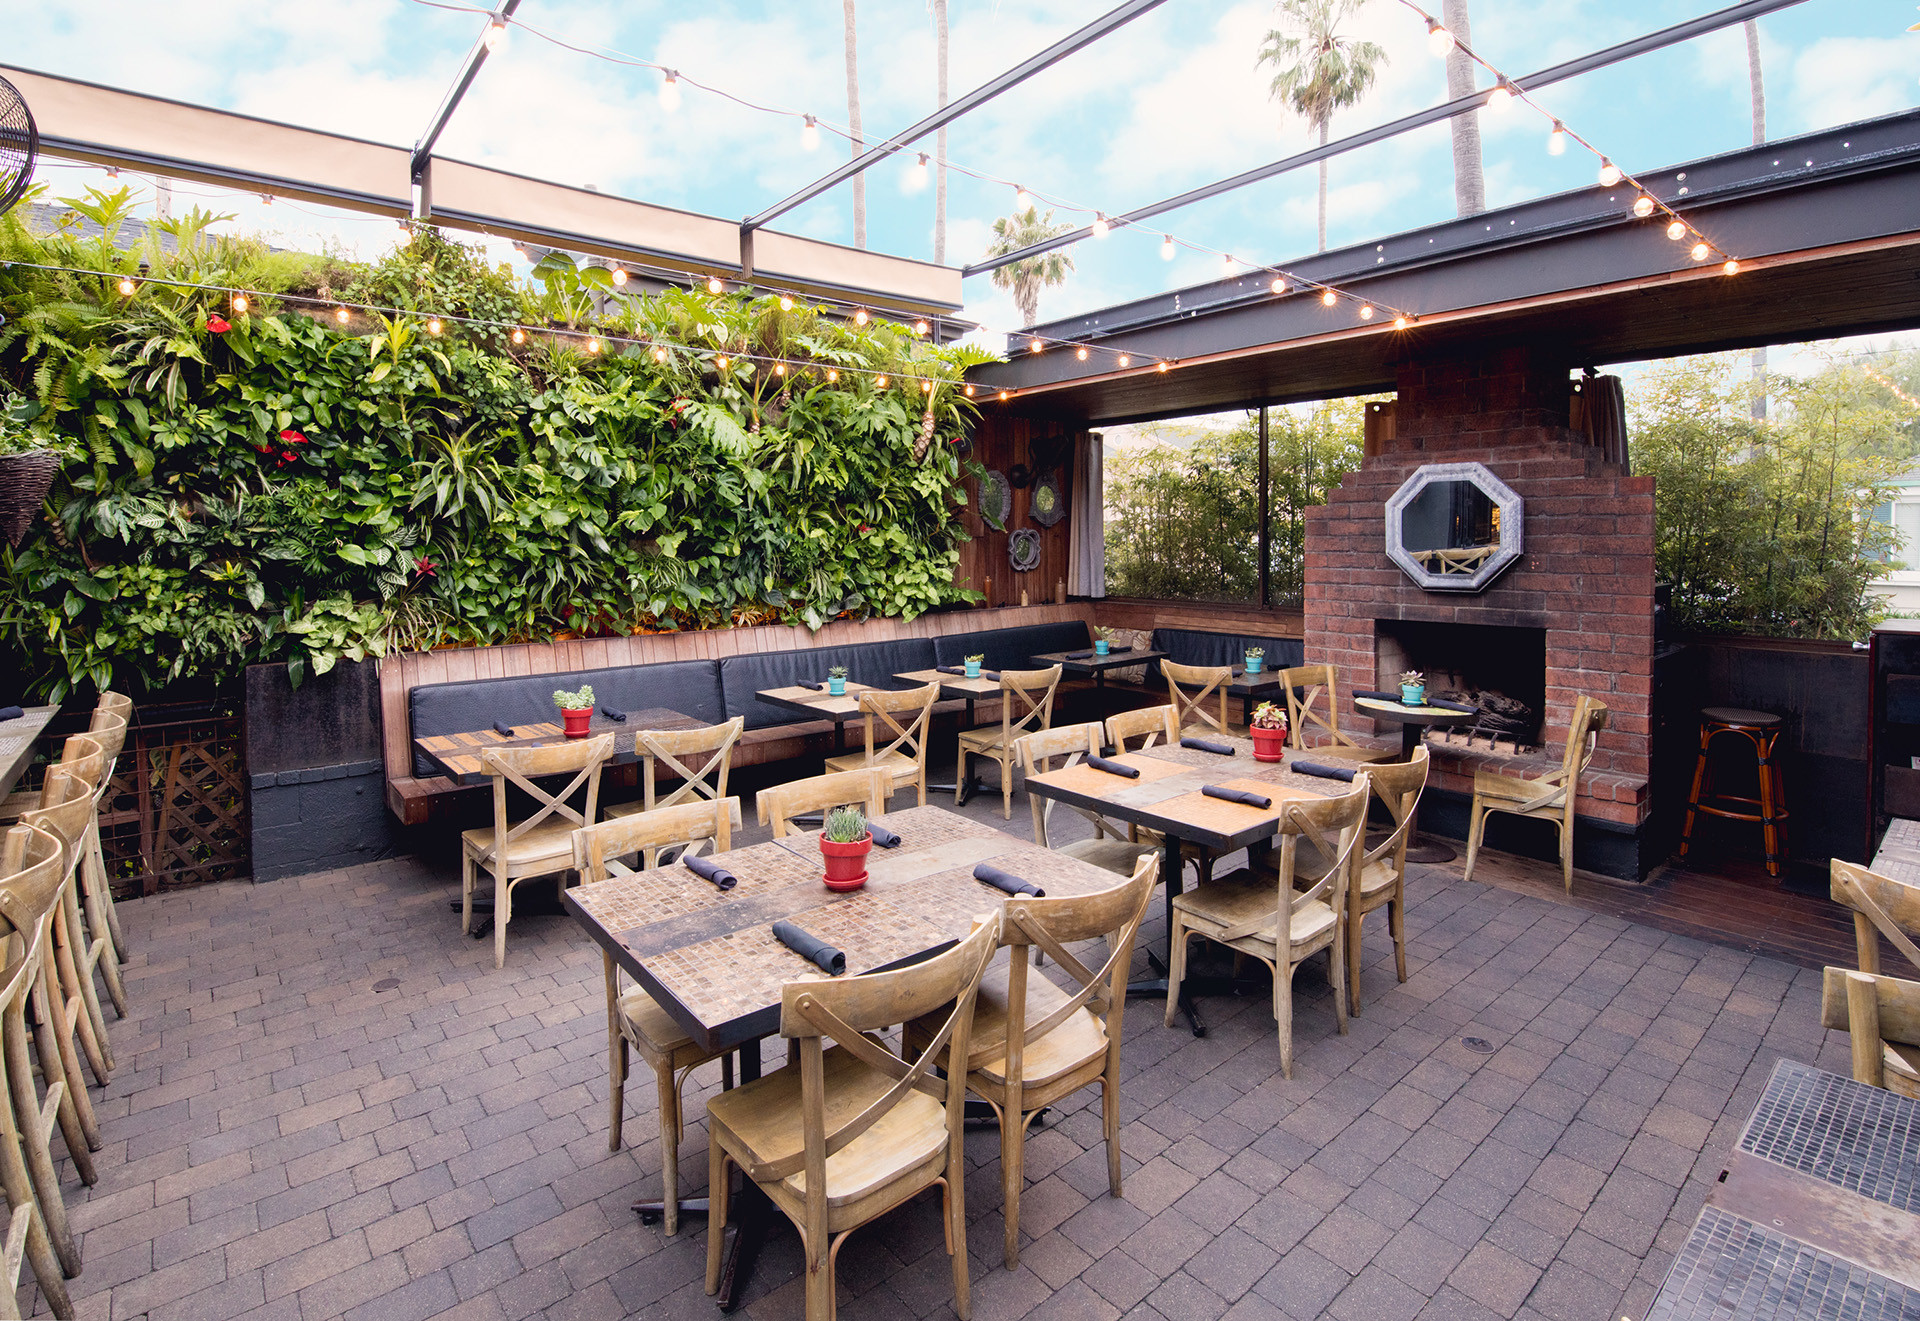 Best ideas about The Patio Restaurant . Save or Pin The Patio on Lamont Now.